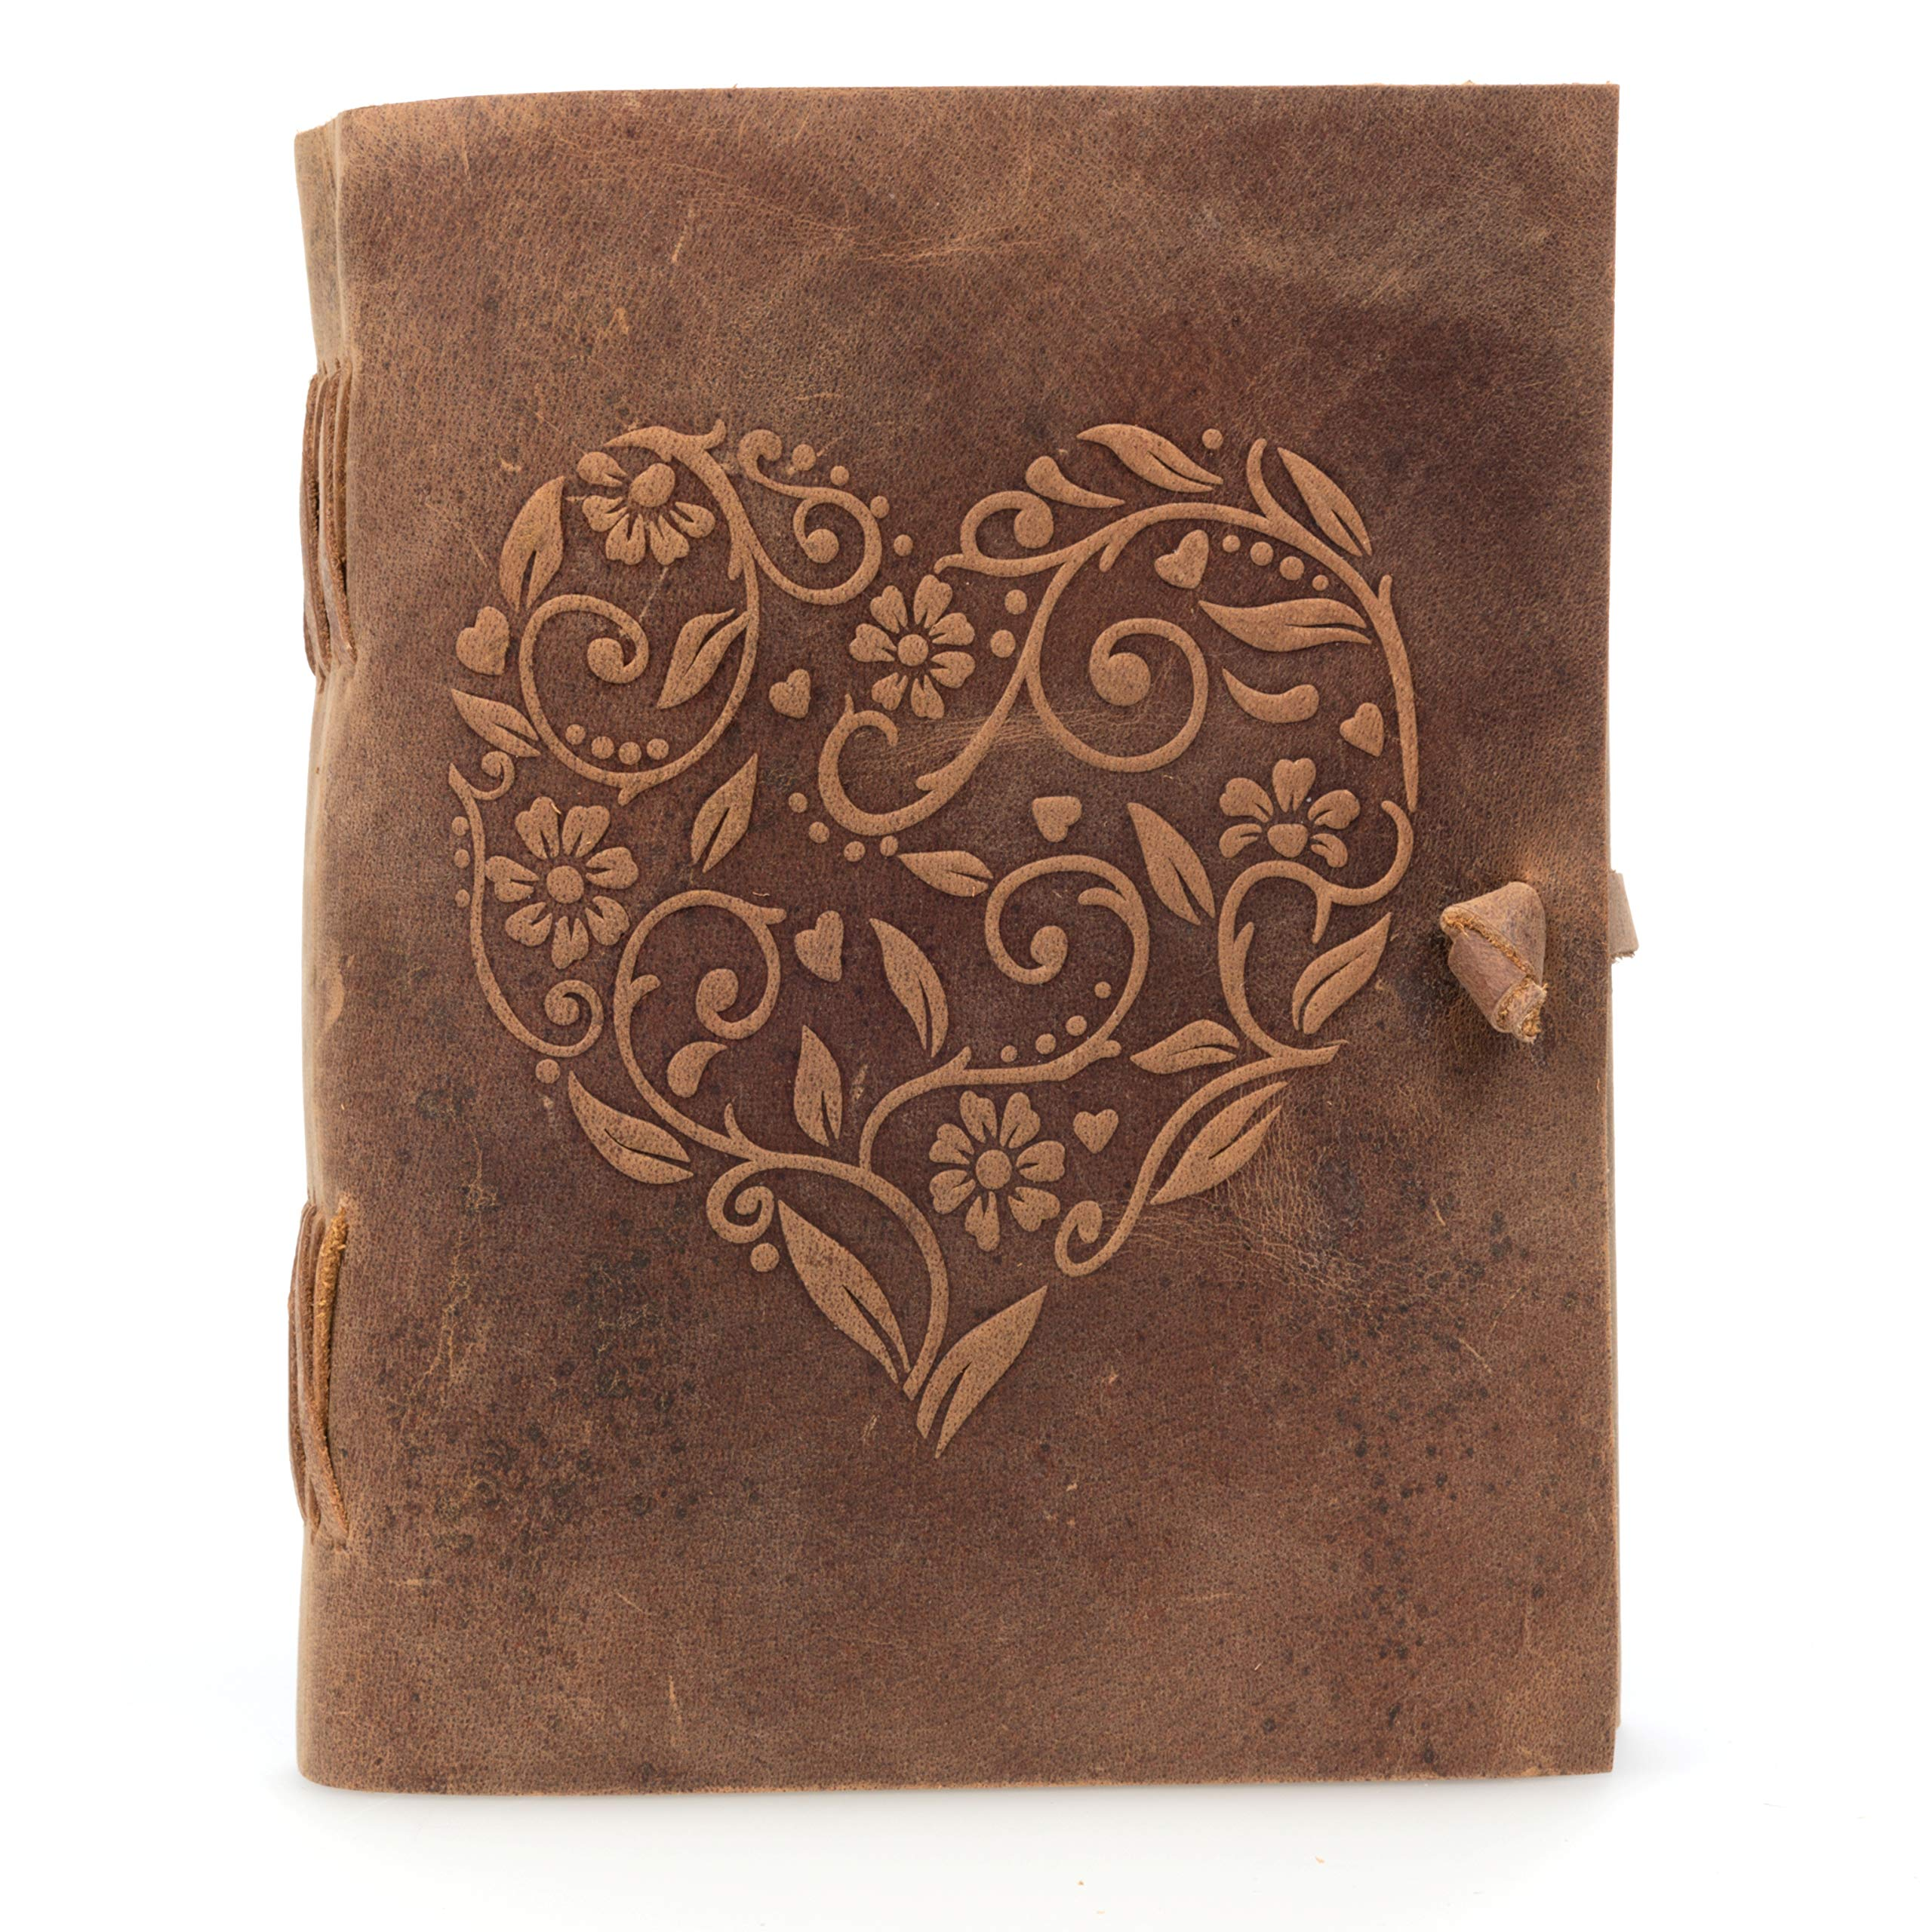 Genuine Leather Journal for Women - Beautiful Handmade Leather Bound Notebook with Embossed Heart Cover - for Daily Drawing and Sketching - Perfect 8 x 6 Inches Size for Travel or Writing on The Go by Moonster